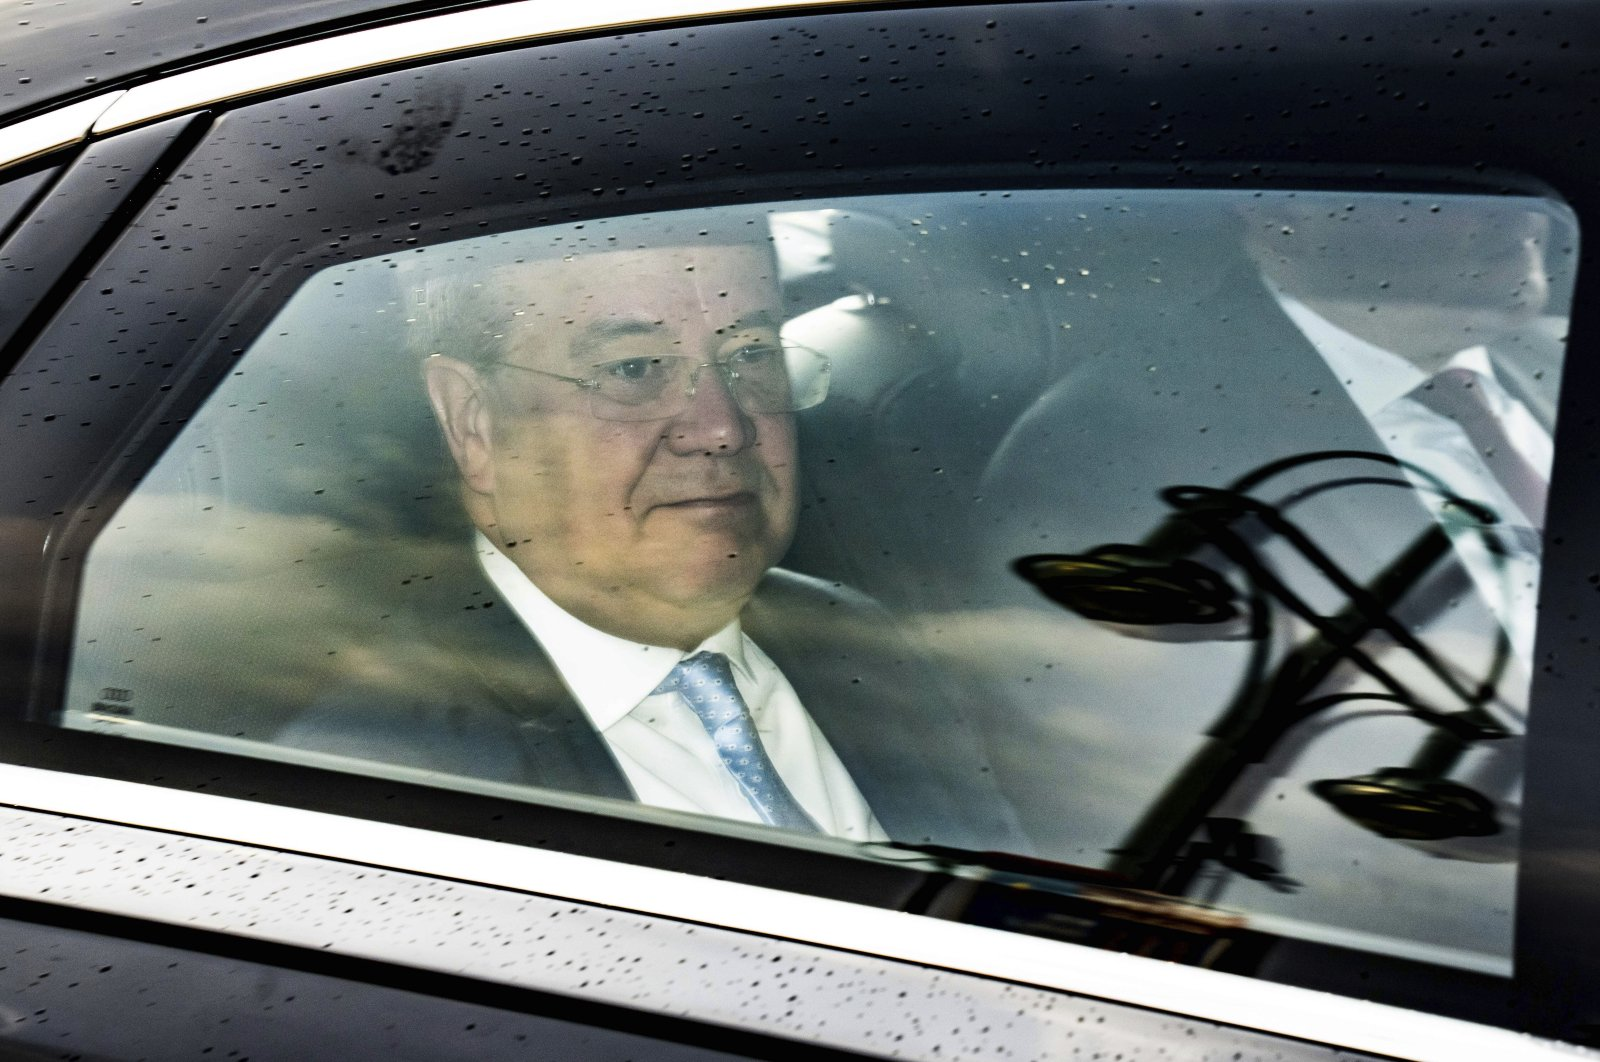 CDU/CSU candidate for chancellor Armin Laschet arrives at the party's leaders' meetings in Berlin, Germany, Sept. 27, 2021. (AP Photo)